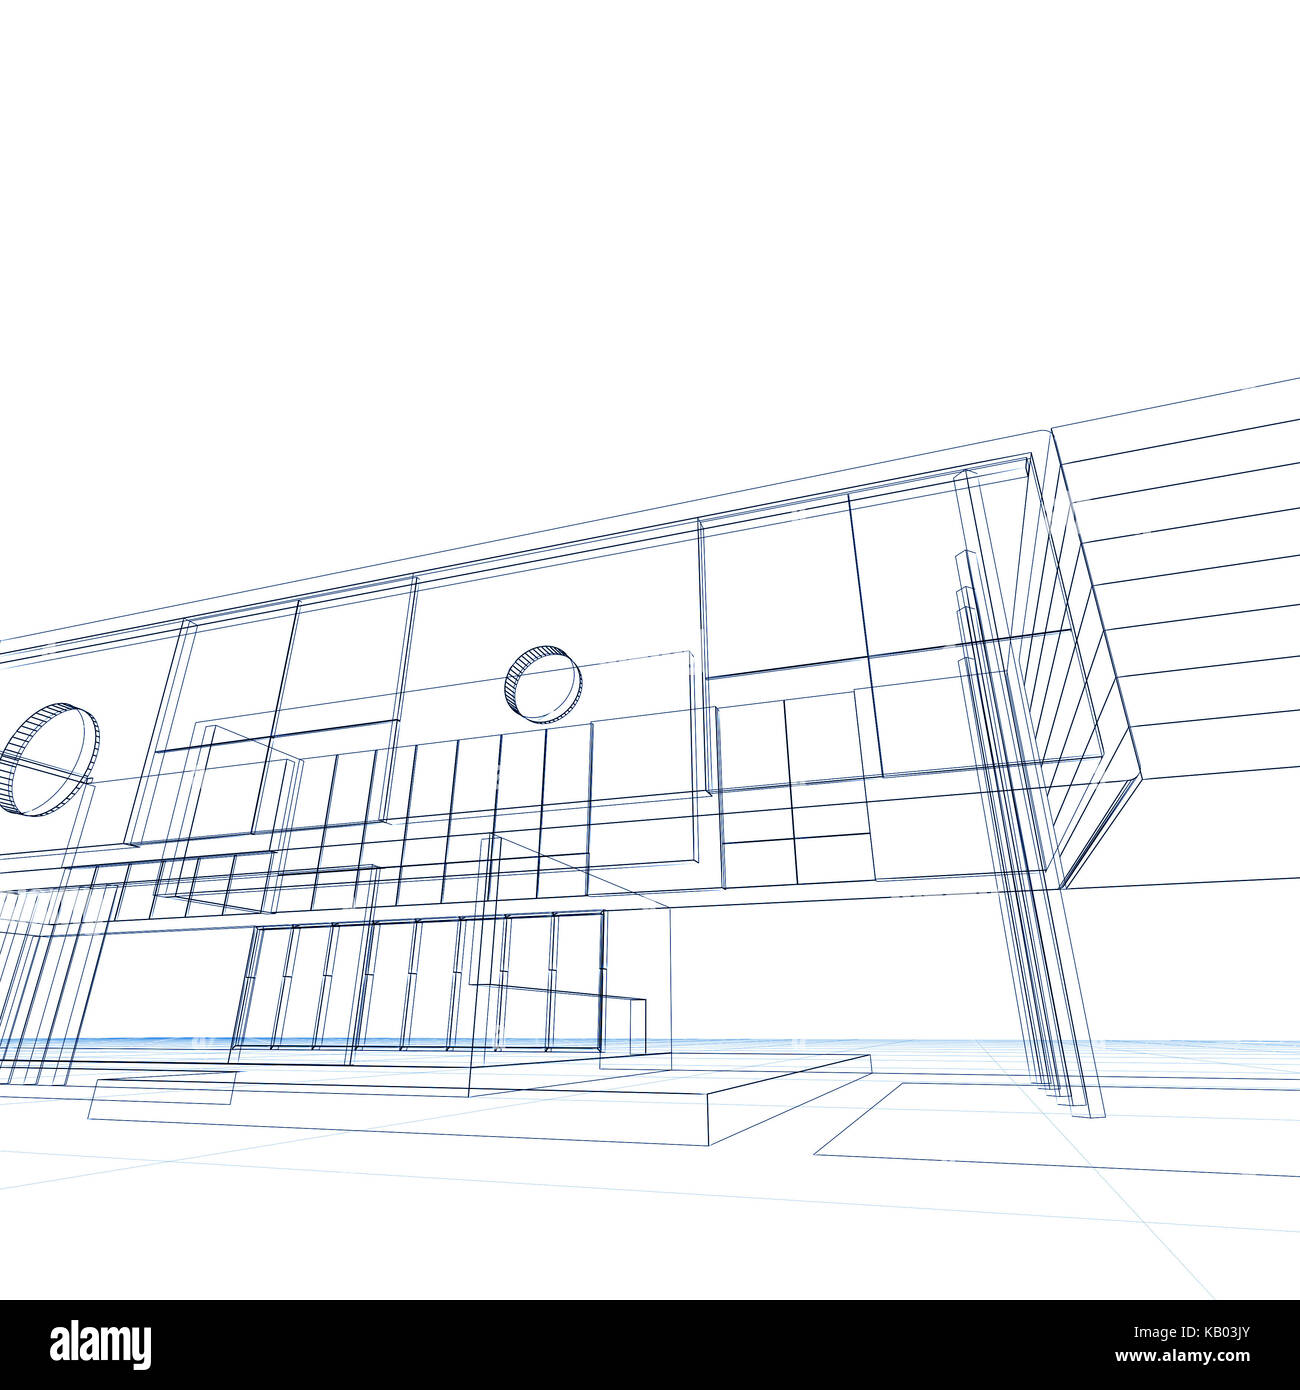 Blueprint on white building design and 3d rendering model my own blueprint on white building design and 3d rendering model my own malvernweather Choice Image